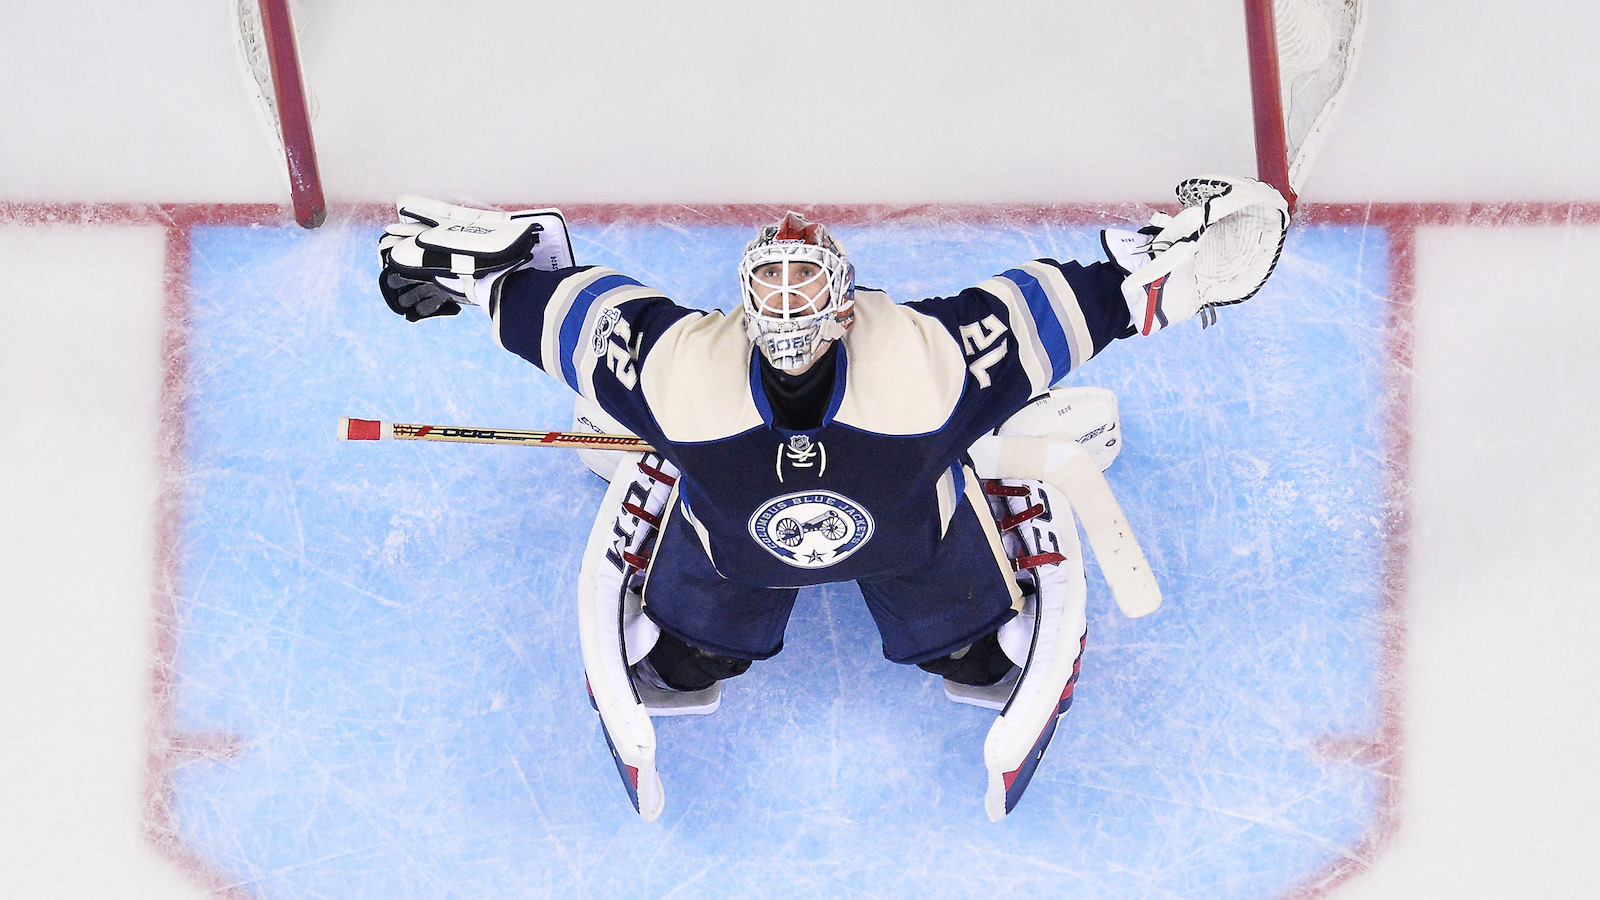 COLUMBUS, OH - JANUARY 3: Goaltender Sergei Bobrovsky #72 of the Columbus Blue Jackets stretches prior to the start of the third period of a game against the Edmonton Oilers on January 3, 2017 at Nationwide Arena in Columbus, Ohio. Columbus defeated Edmonton 3-1. (Photo by Jamie Sabau/NHLI via Getty Images)